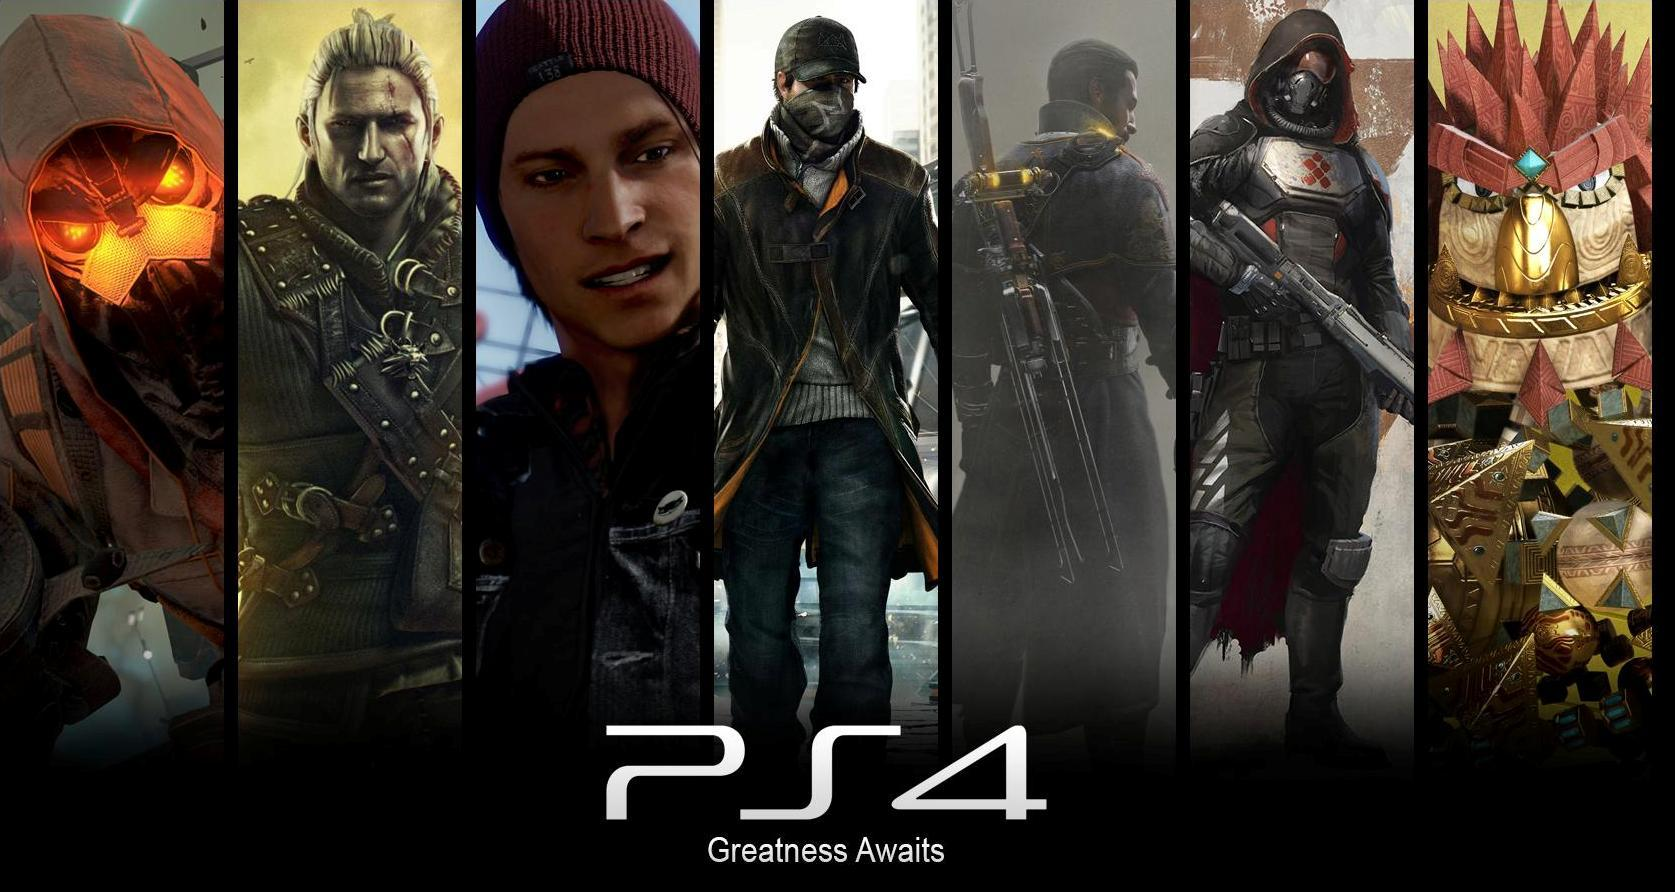 PS4,Sony,God of War 3,Uncharted: The Lost Legacy,Until Dawn,Hellblade: Senua's Sacrifice,Hellblade,Nier: Automata,Bloodborne,The Last of Us,Uncharted 4: A Thief's End,The Last Guardian,Horizon Zero Dawn,بازی های PS4,بازی های انحصاری پلی استیشن 4,برترین بازی های پلی استیشن 4,بهترین بازی های پلی استیشن 4,بهترین بازی های PS4,بهترین بازی های انحصاری PS4,بهترین بازی های انحصاری پلی استیشن 4,داستان بازی Horizon Zero Dawn,داستان بازی The Last Guardian,داستان بازی Uncharted 4: A Thief's End ,داستان بازی آنچارتد 4,داستان بازی The Last of Us,بلاد بورن,داستان بازی بلاد بورن,داستان بازی Nier: Automata,داستان بازی Hellblade: Senua's Sacrifice,داستان بازی Hellblade,داستان بازی Uncharted: The Lost Legacy,داستان بازی Until Dawn,آنتیل داون,داستان بازی God of War 3: Remastered,داستان بازی خدای جنگ 3,خدای جنگ 3,کریتوس,خدای جنگ, ps4 exclusive games